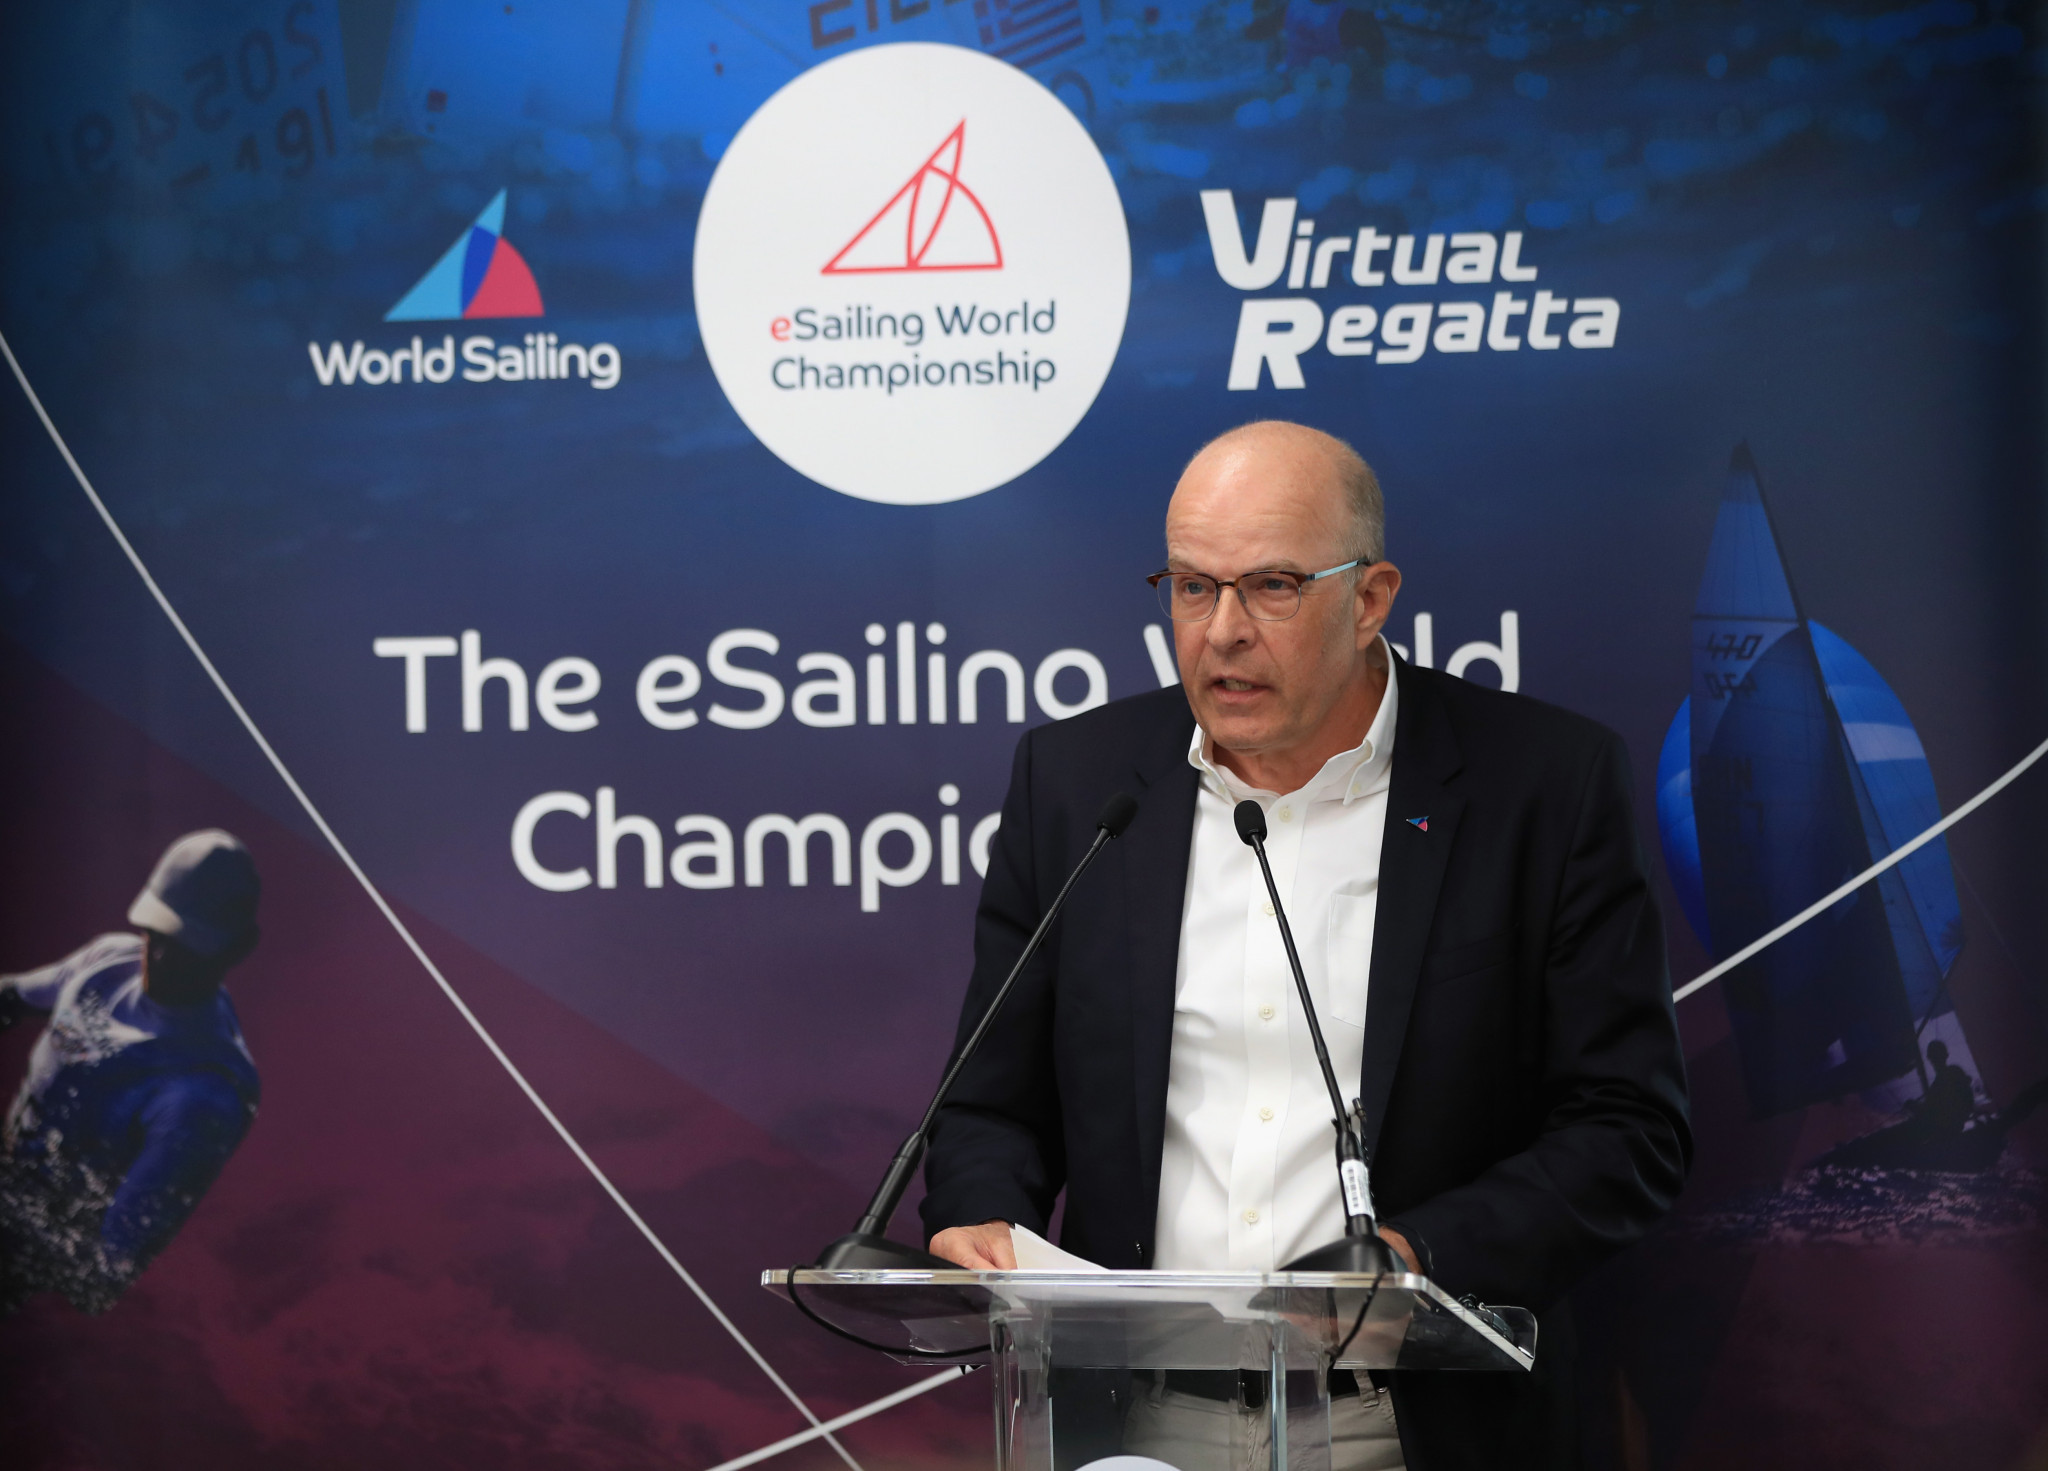 Kim Andersen was elected World Sailing President in 2016 ©Getty Images